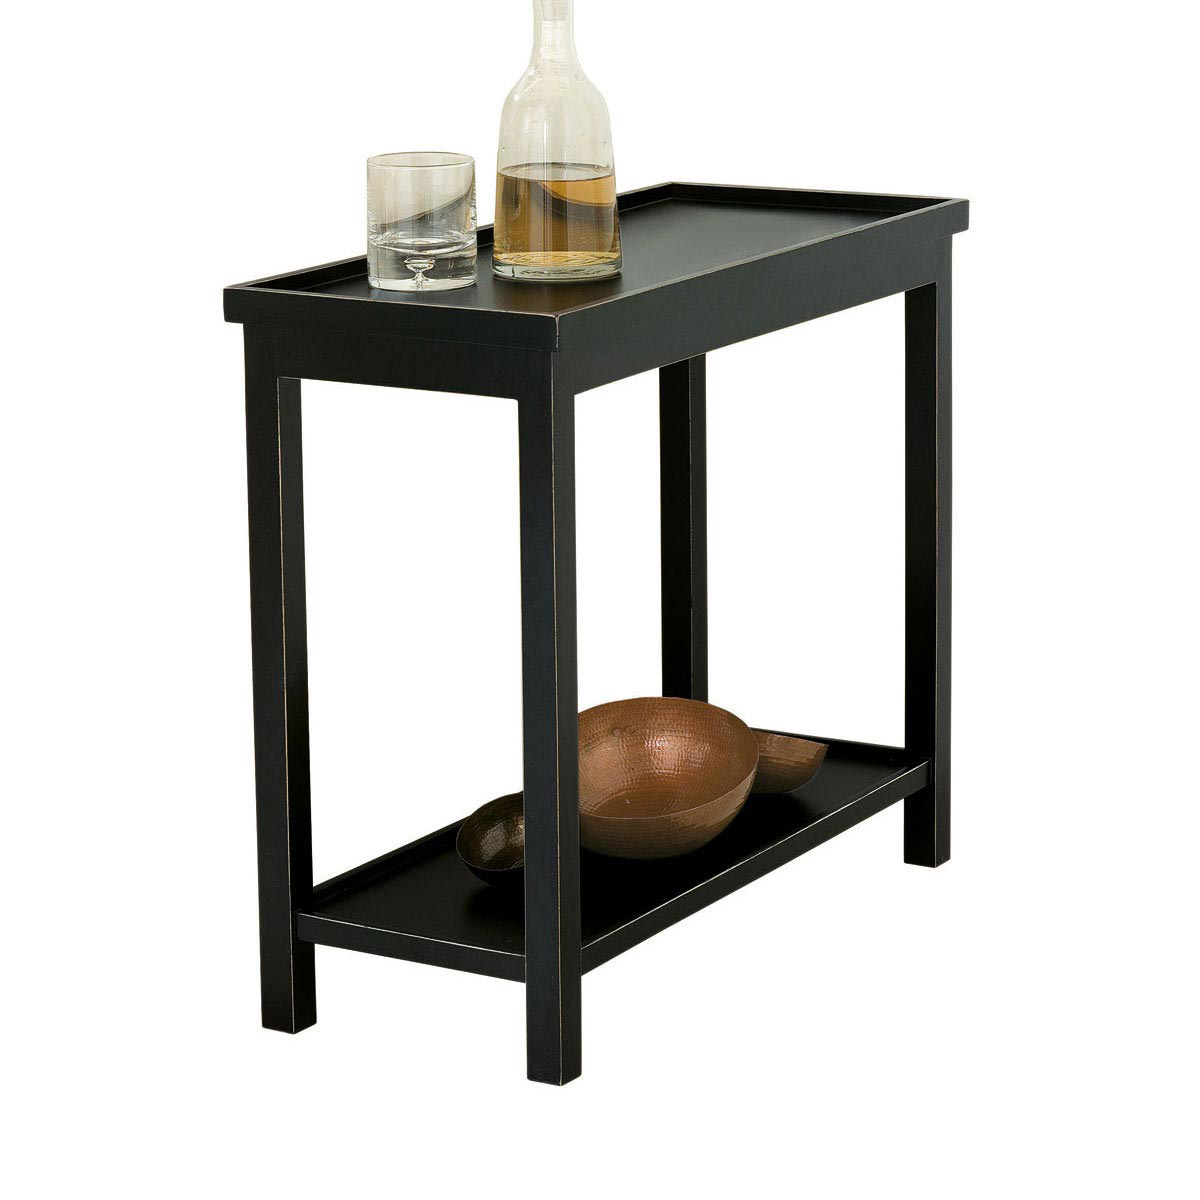 jet rubbed black narrow wooden side table oka coffee and end tables oriental lacquer cabinet glass dining legs thomasville set farmhouse wood furniture realtree san bernardino